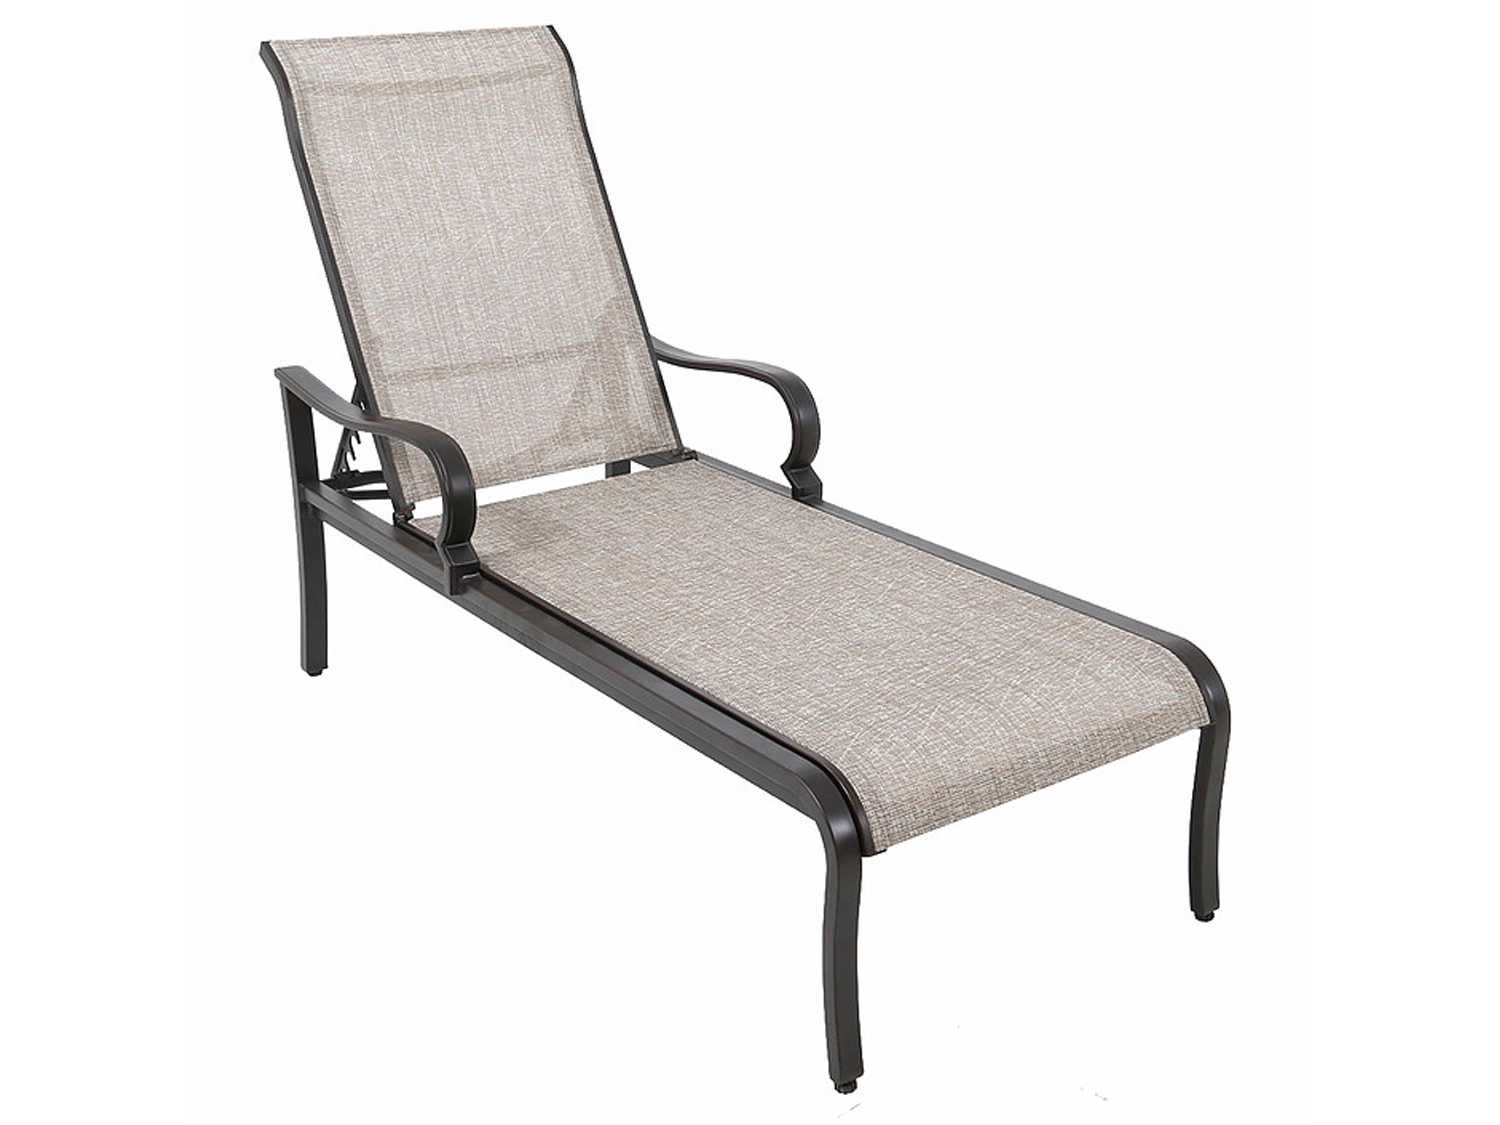 Sunvilla laurel sling aluminum chaise lounge a121100 for Aluminum chaise lounges